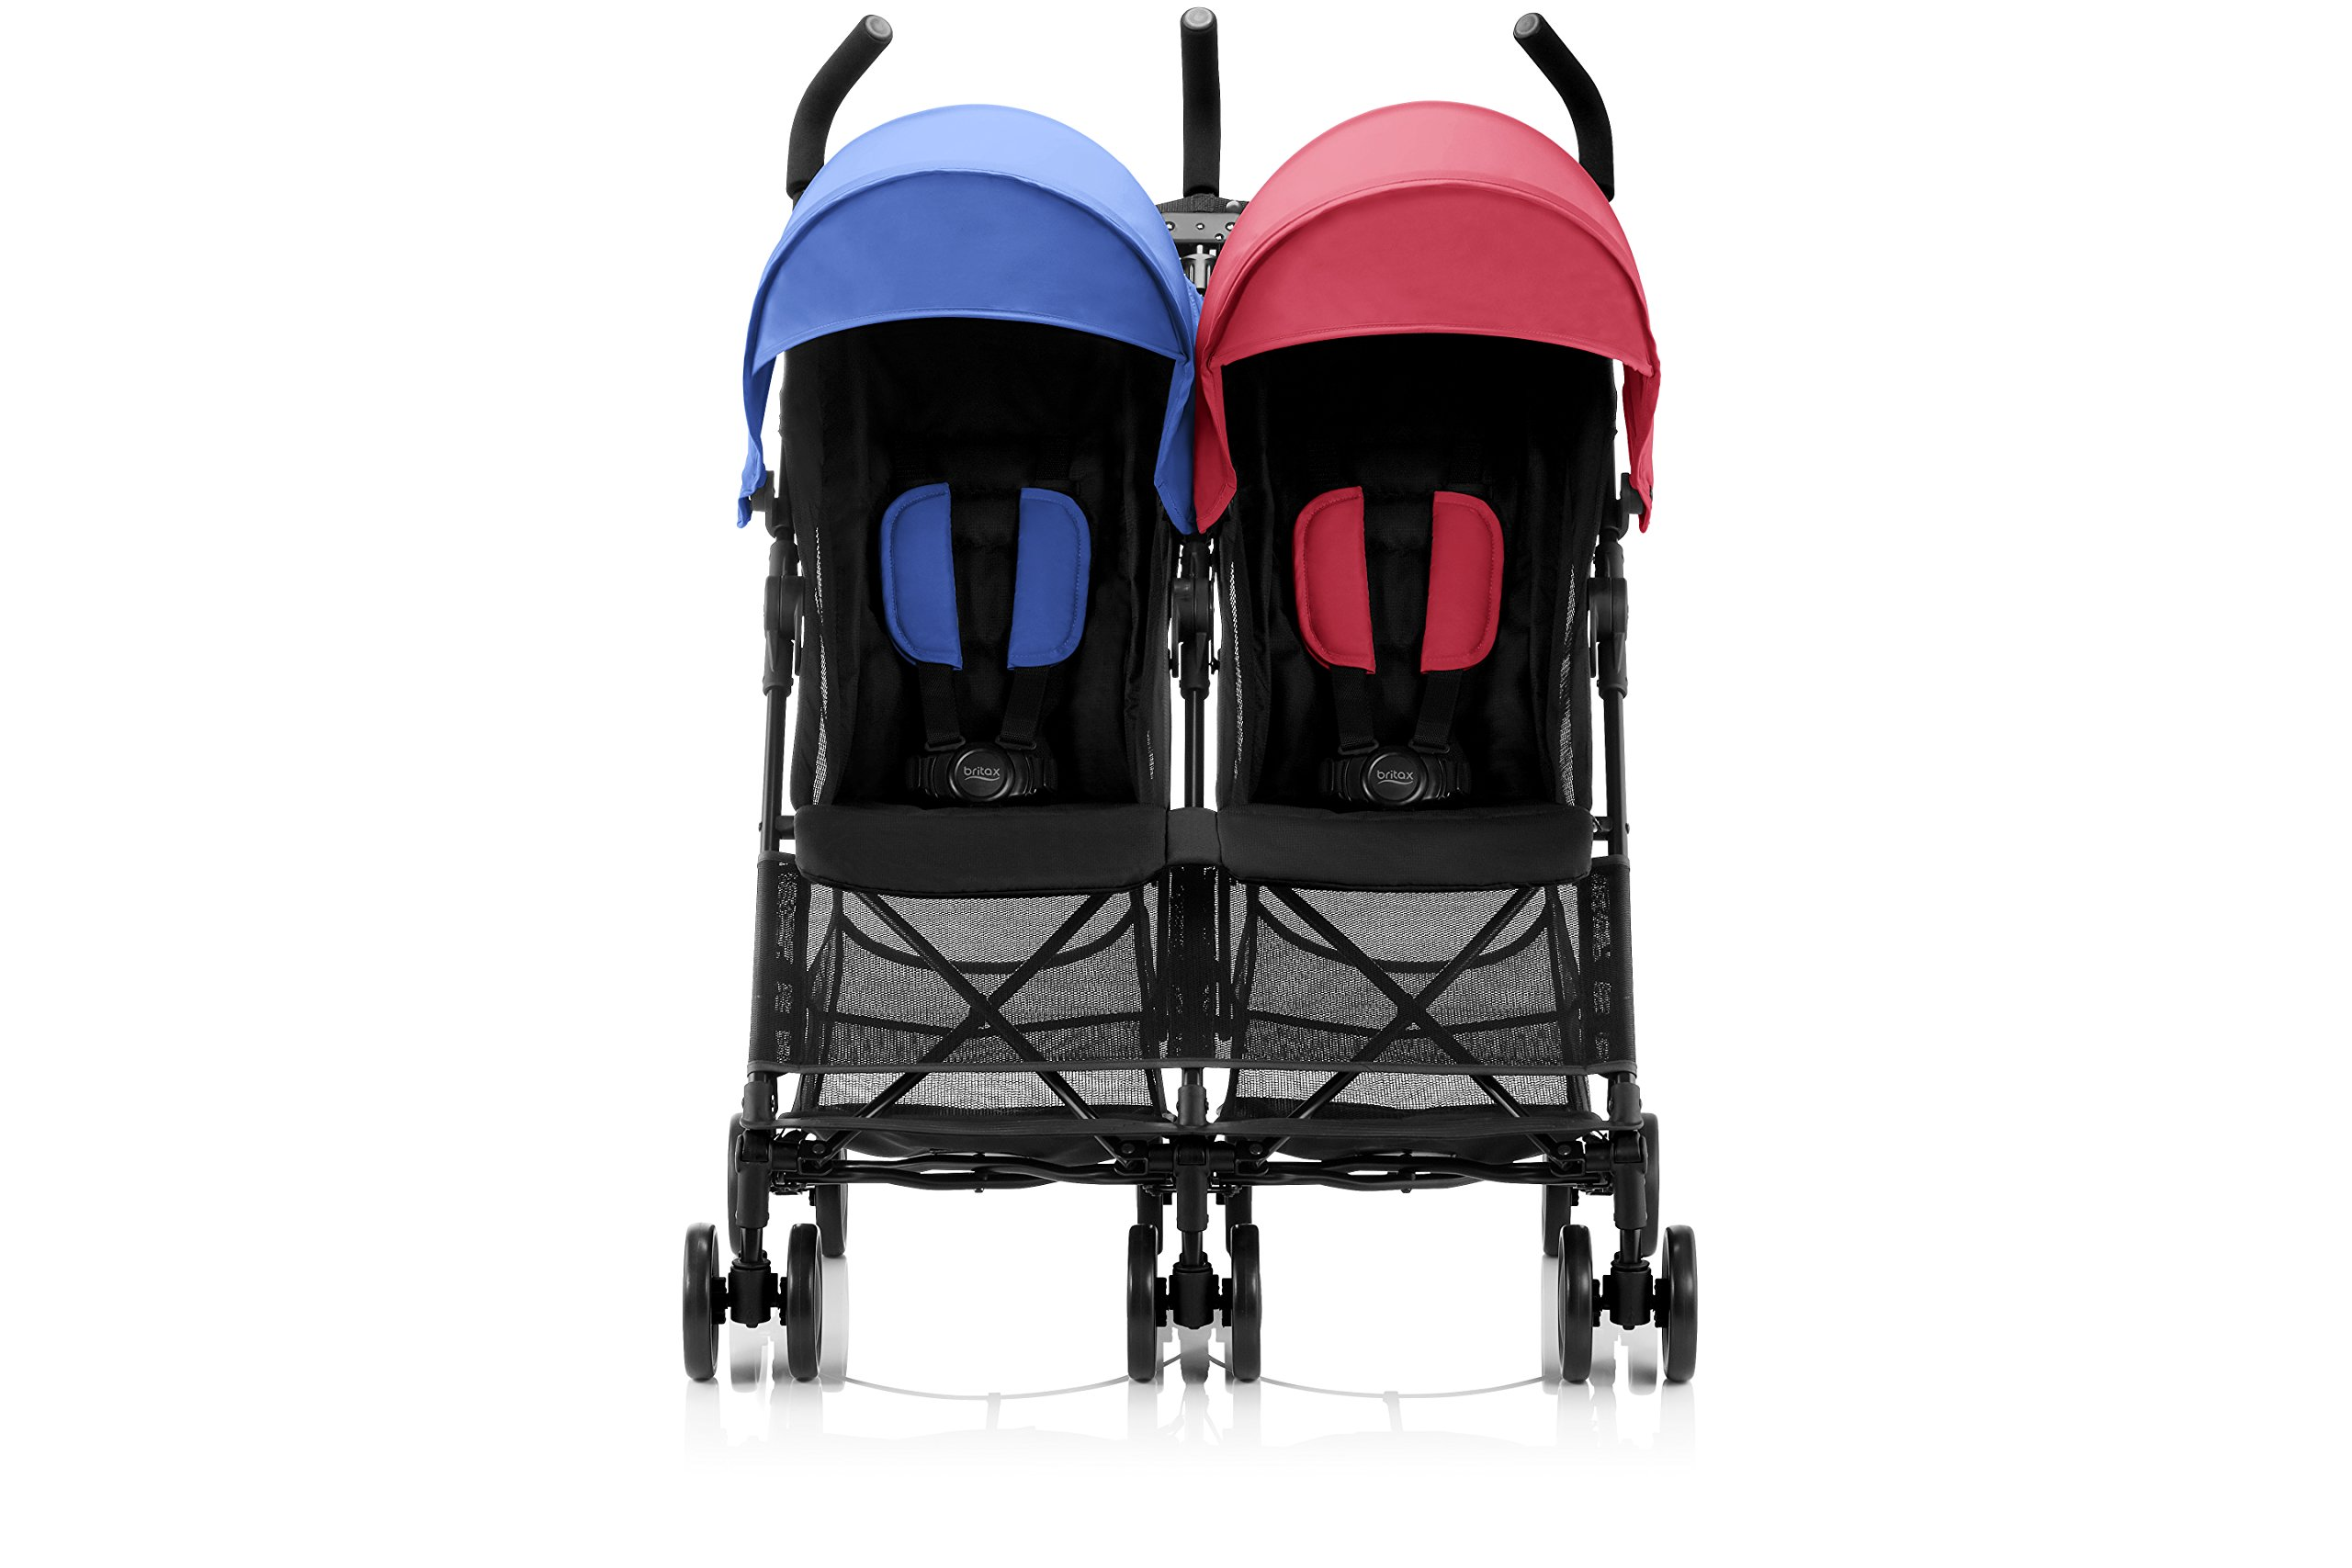 Britax Römer HOLIDAY DOUBLE Pushchair (6 months - 15 kg|3 years ) - Red/Blue  Reclining backrest - you can make your child's journey even more convenient with the reclining backrest. the backrest can be reclined independently which gives you the flexibility to provide a relaxing sleeping position for each child individually. Seat unit with mesh panels - to keep your child comfortable on hot days, the seat unit has mesh panels on the sides and top of the seat unit for better air circulation. Large hood with sun visor - when taking a nice relaxing stroll in the sun, the large hoods with sun visor are independently adjustable and provide protective shade to your little passenger. 2